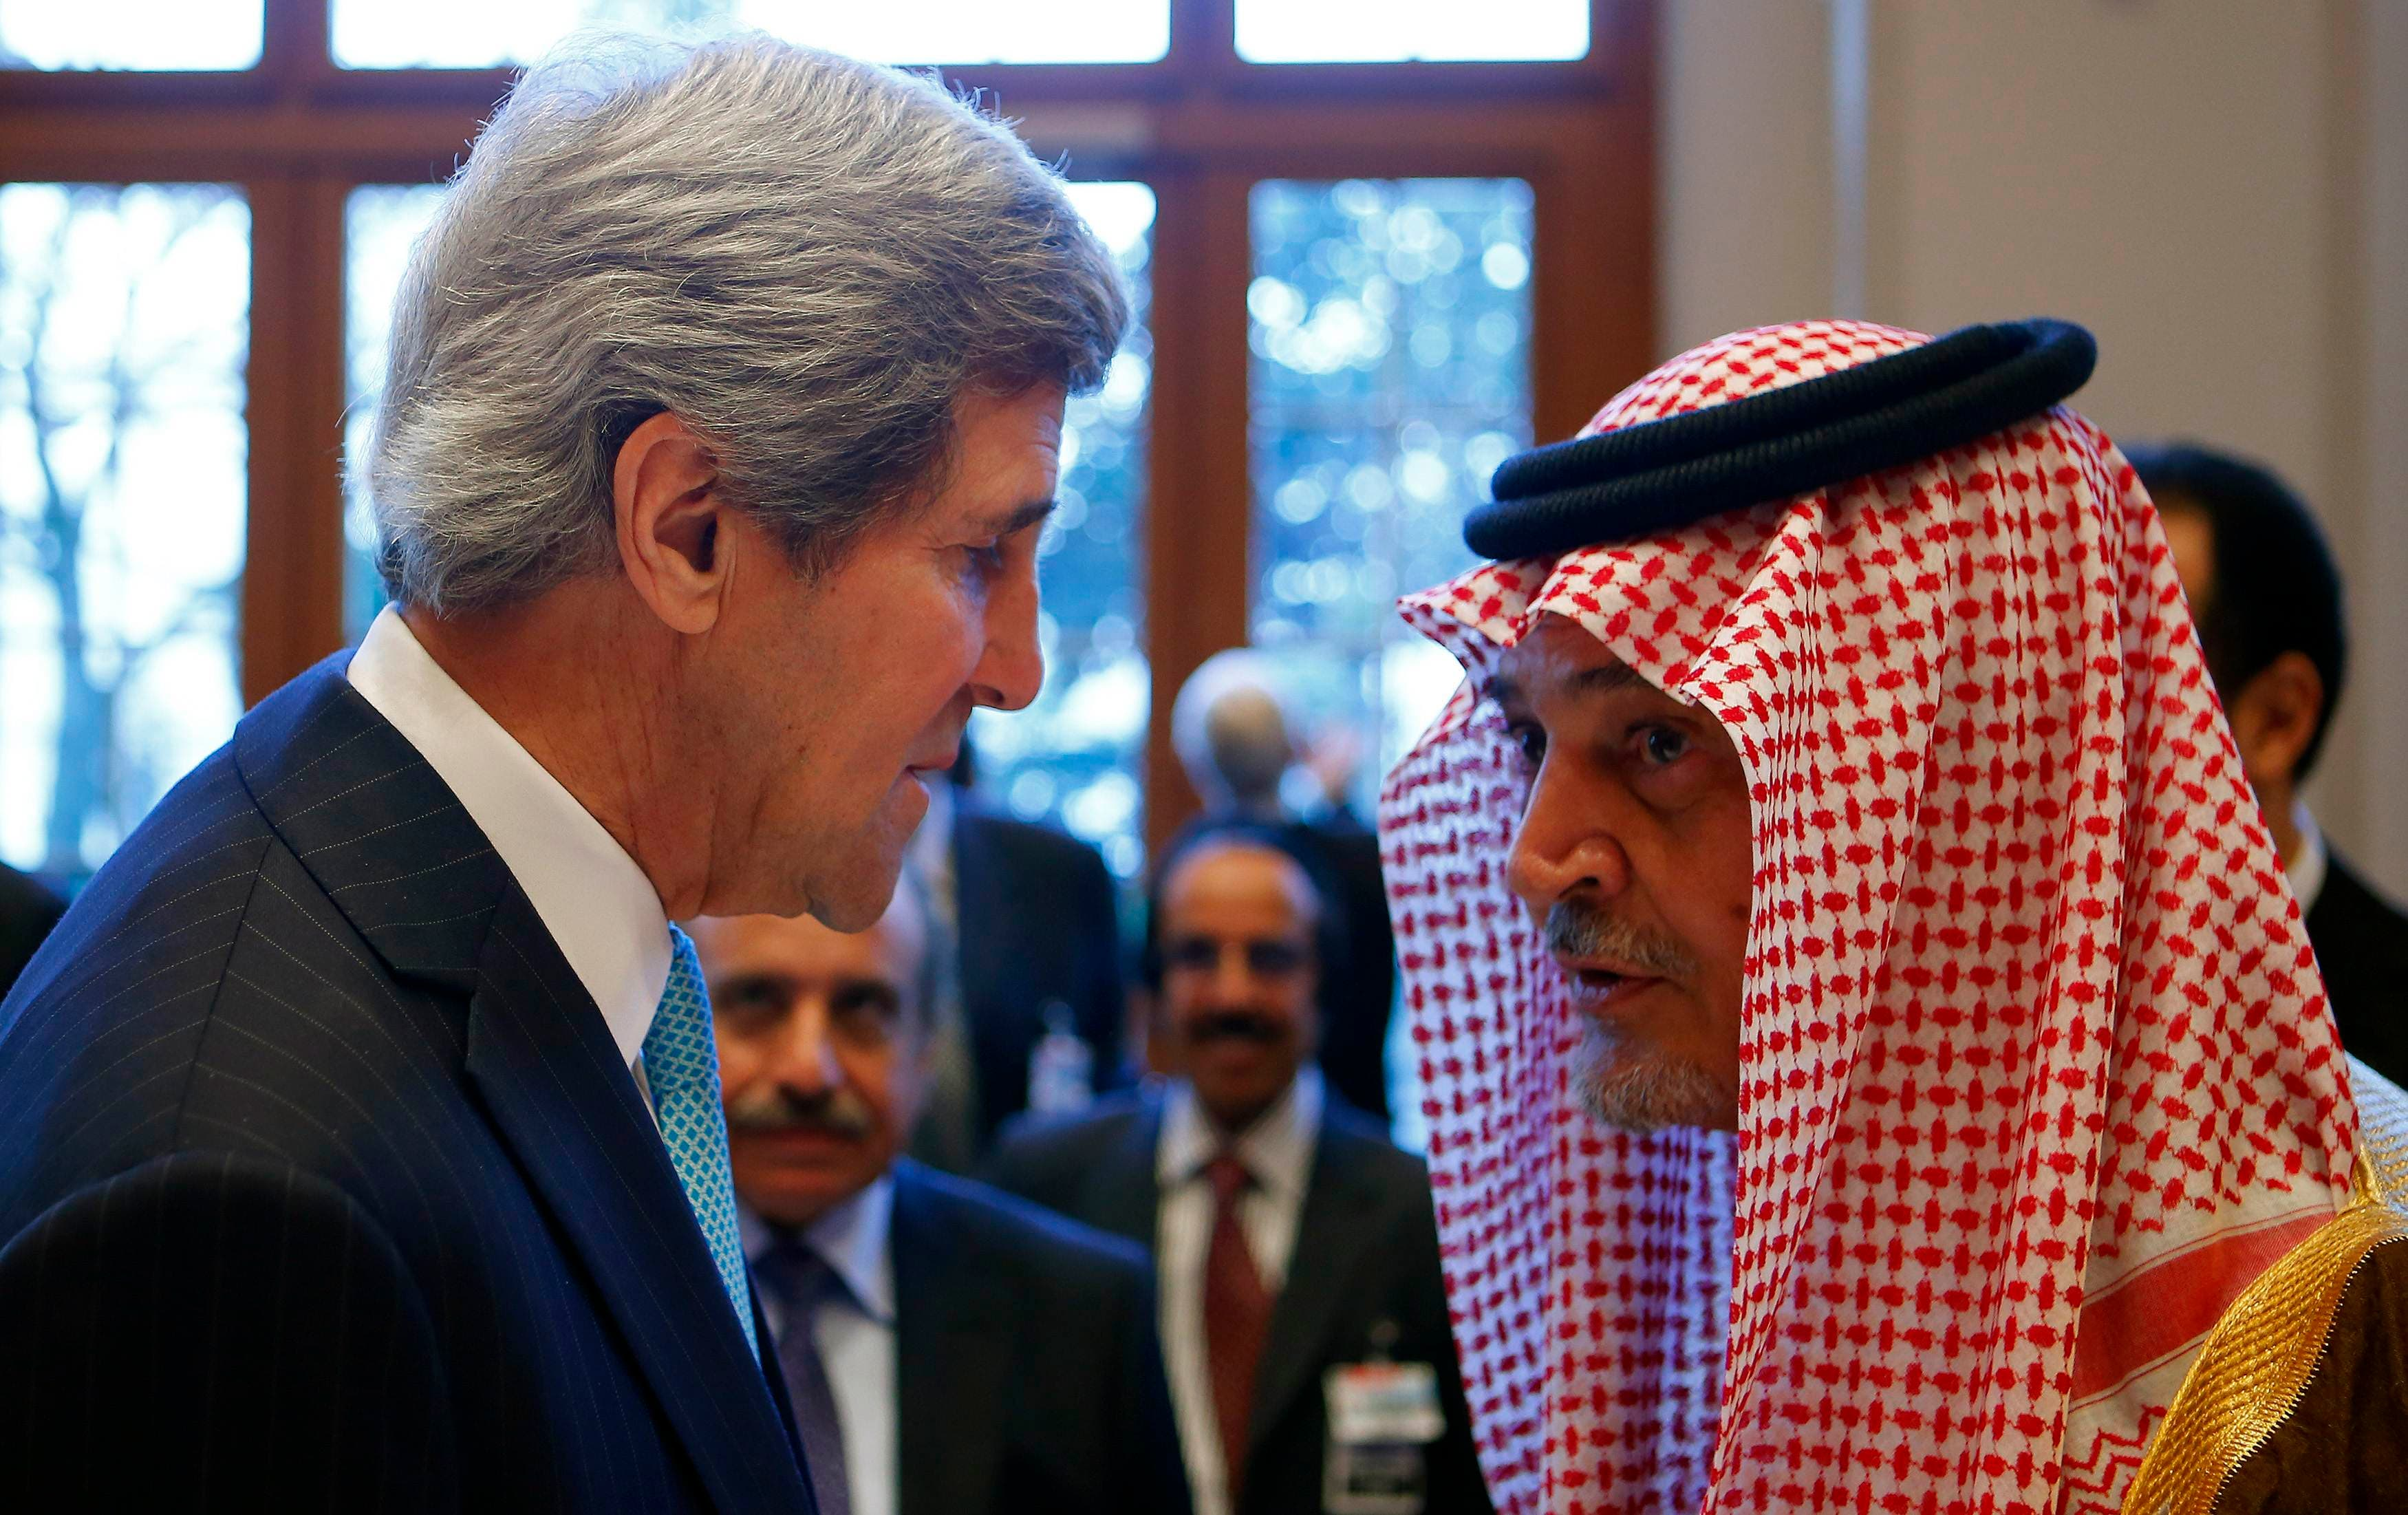 U.S. Secretary of State John Kerry (L) talks to Saudi Arabia's Foreign Minister Prince Saud al-Faisal prior to the Geneva-2 peace talks in Montreux Jan. 22, 2014. (Reuters)